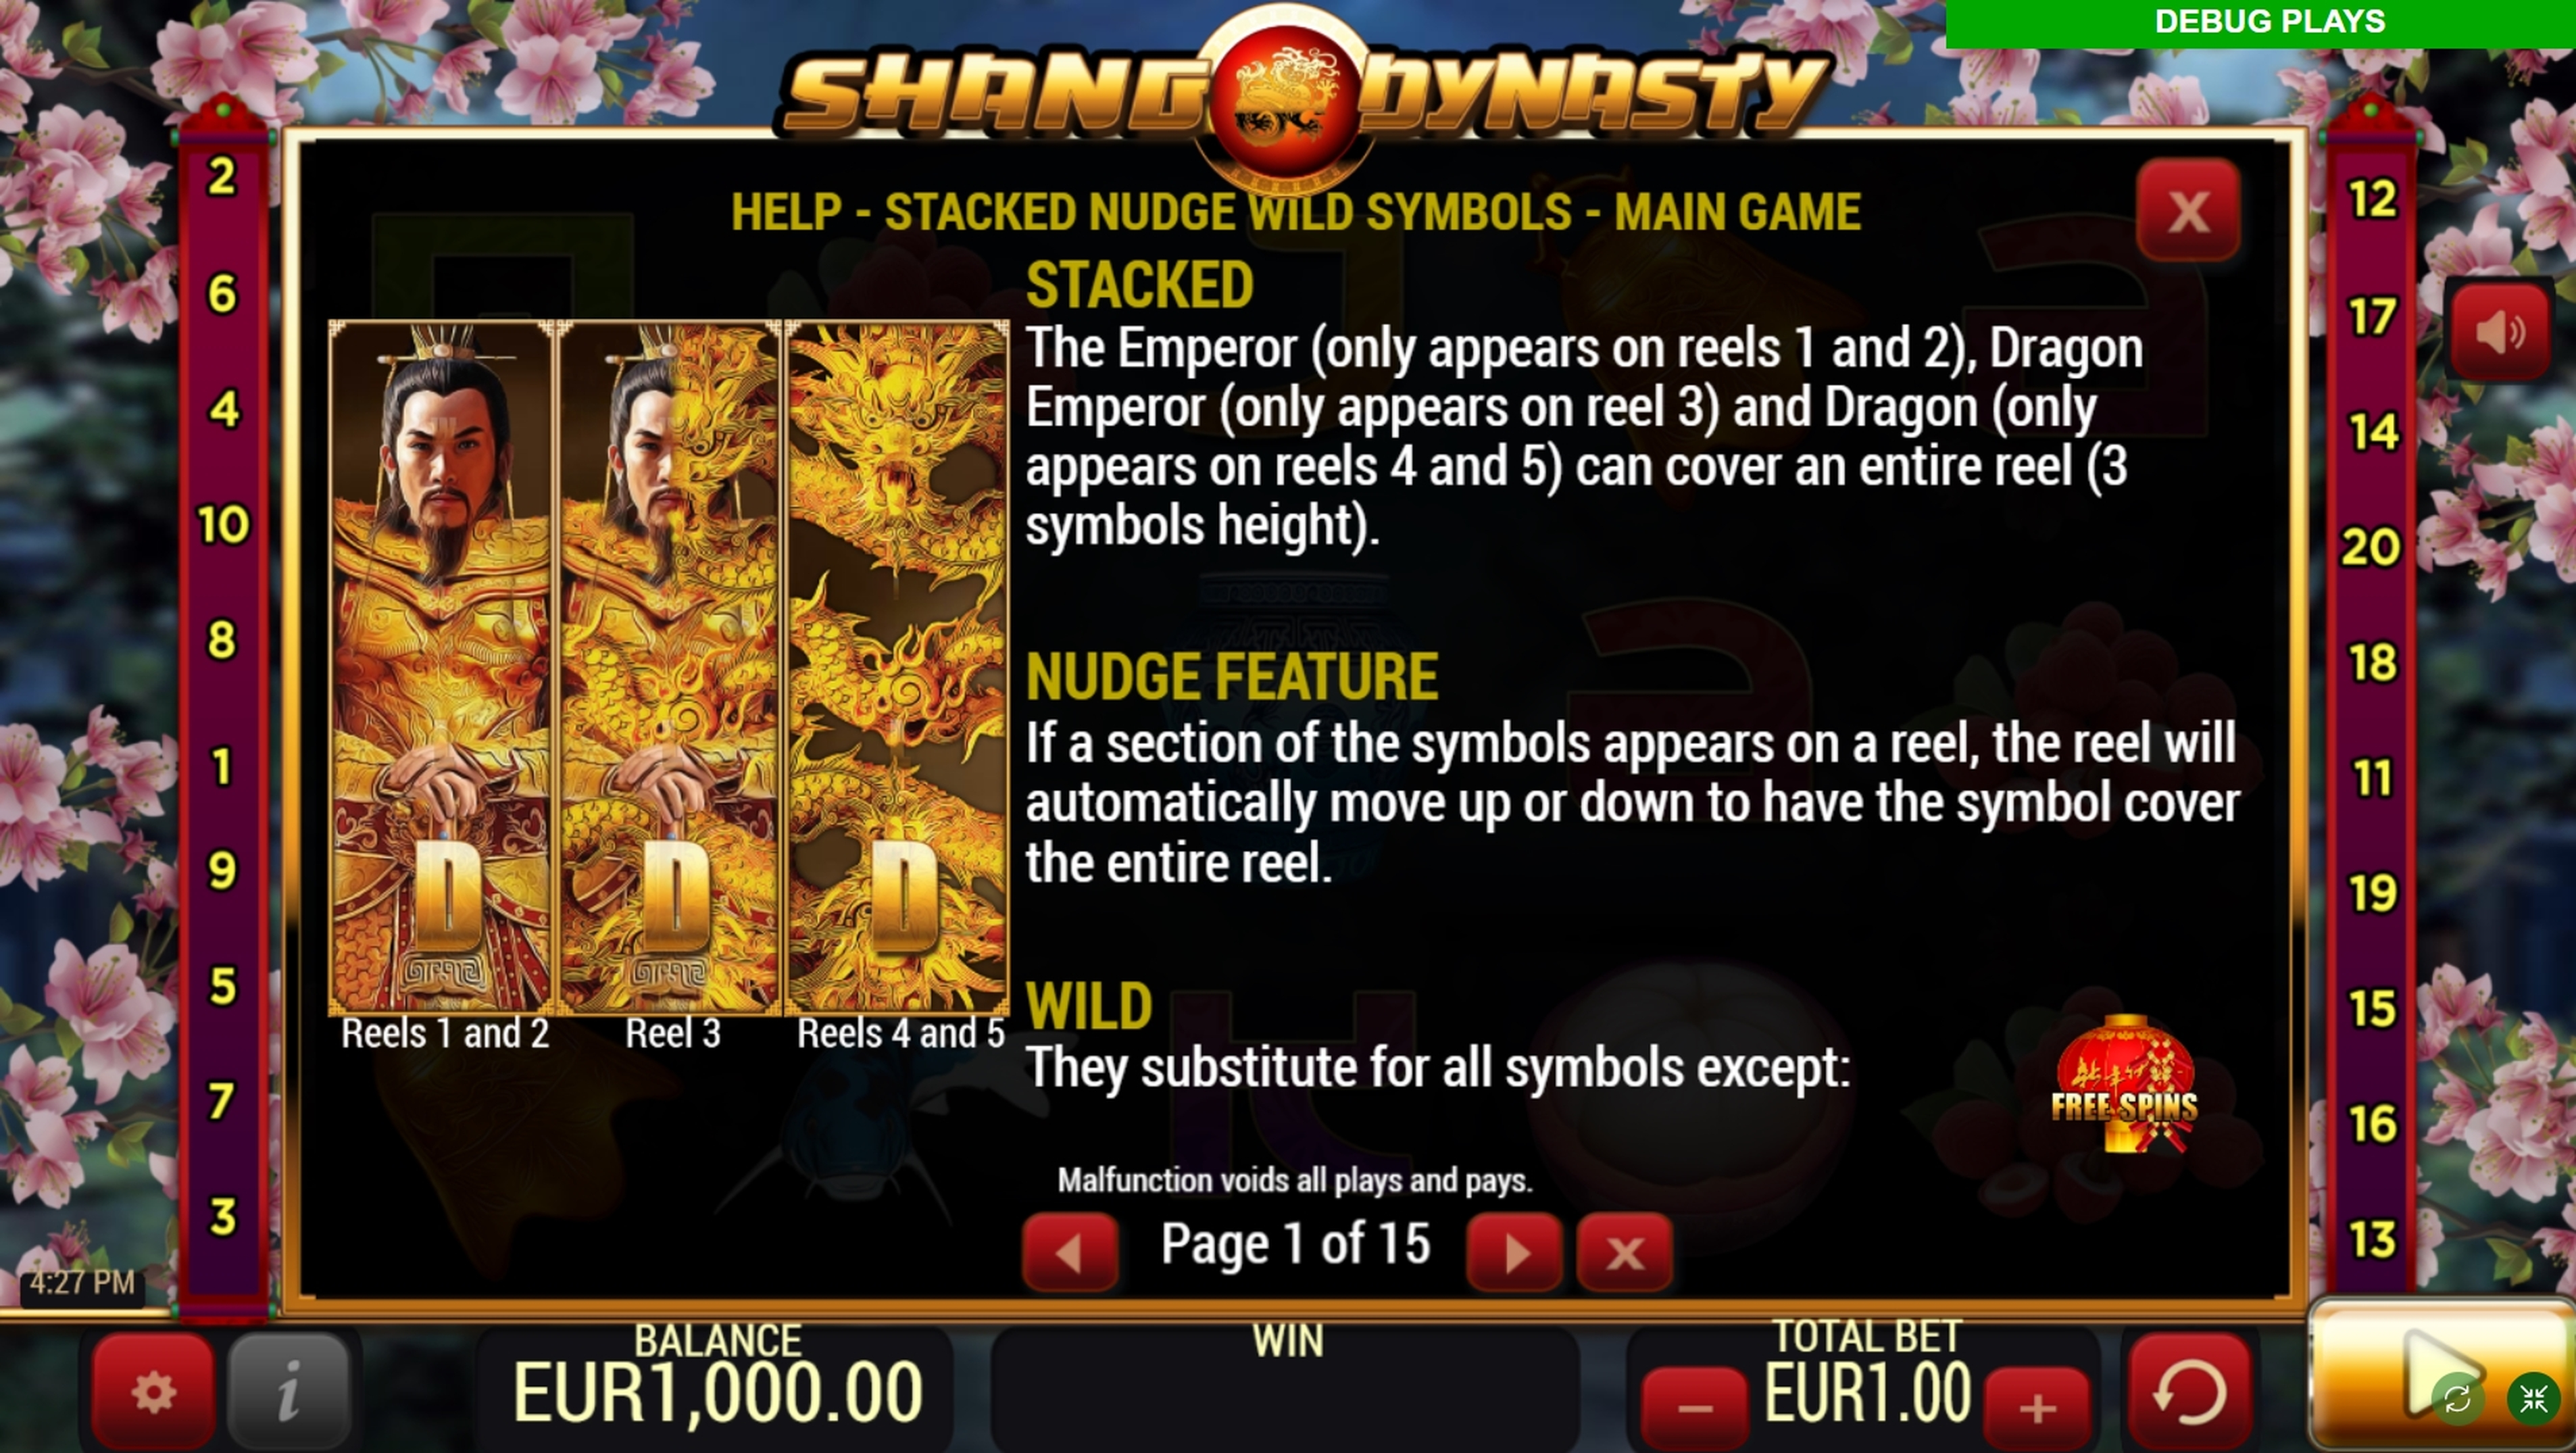 Info of Shang Dynasty Slot Game by YoloPlay